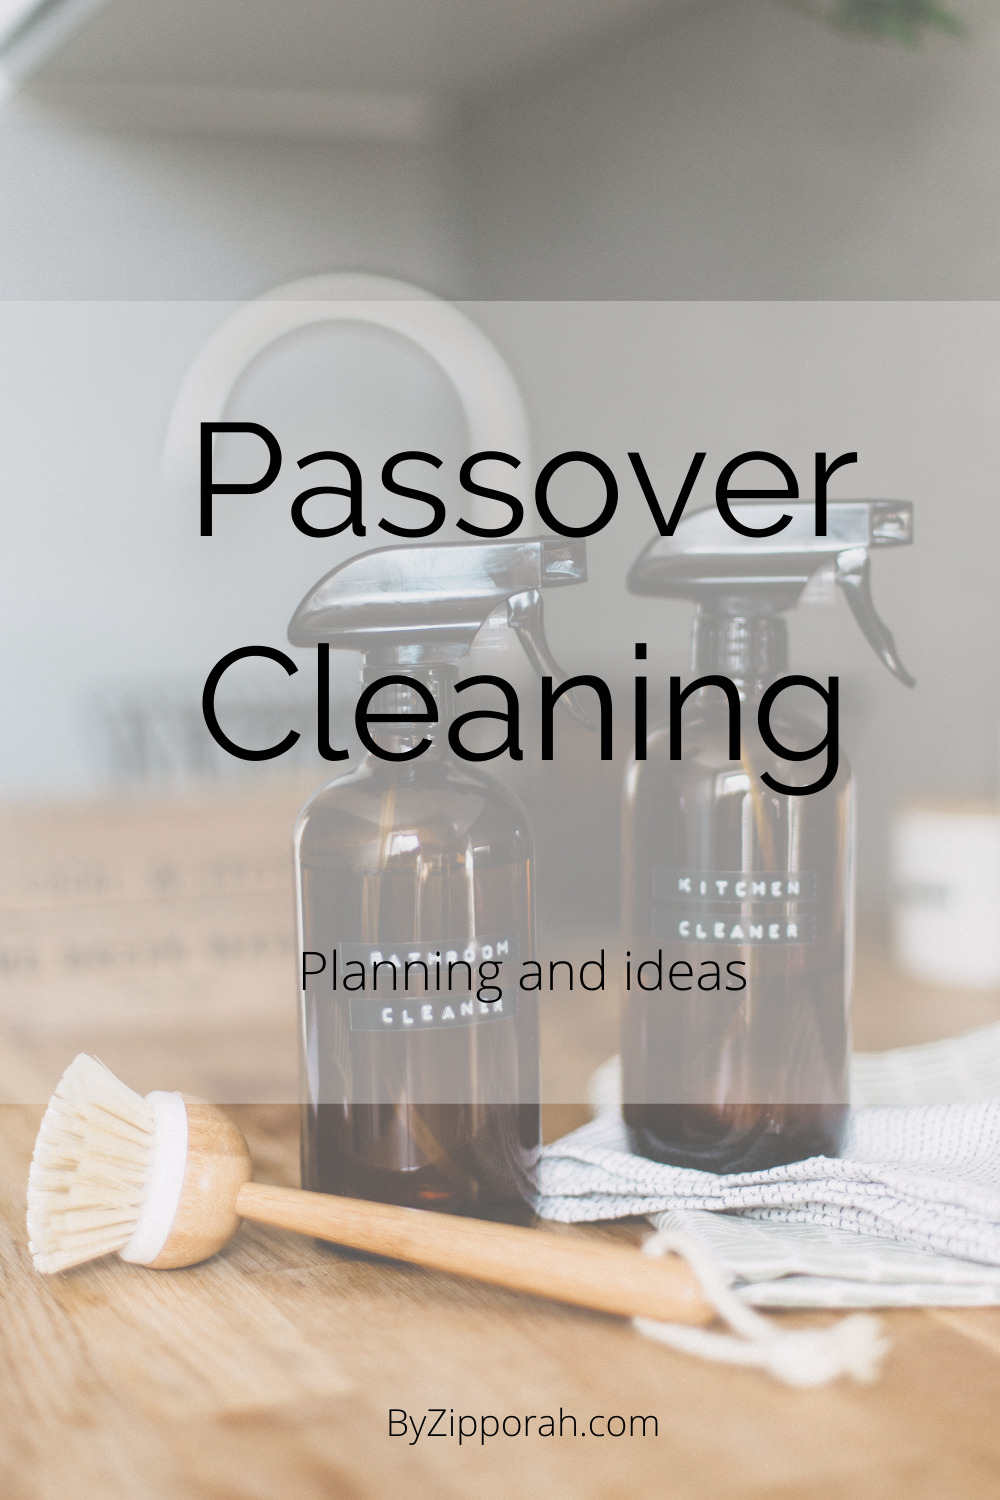 Passover Cleaning – Planning and Ideas